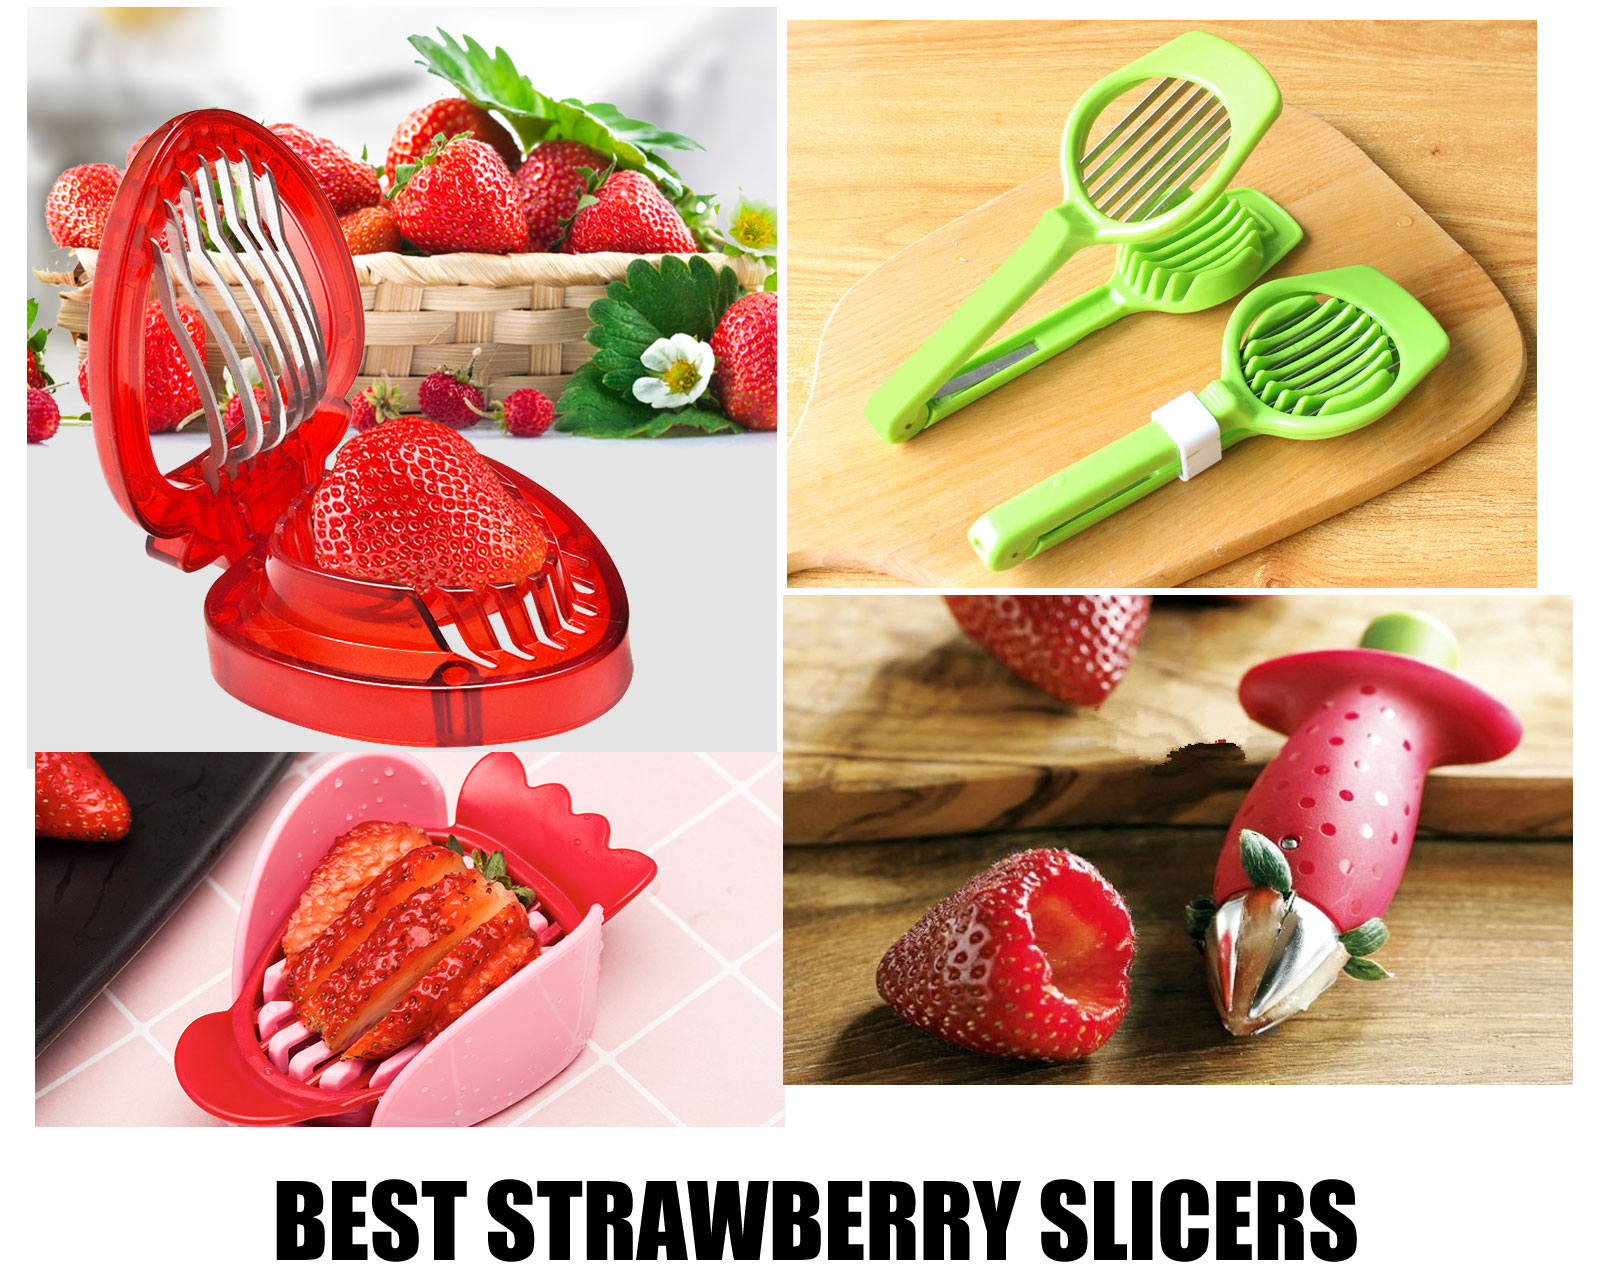 Strawberry Slicers